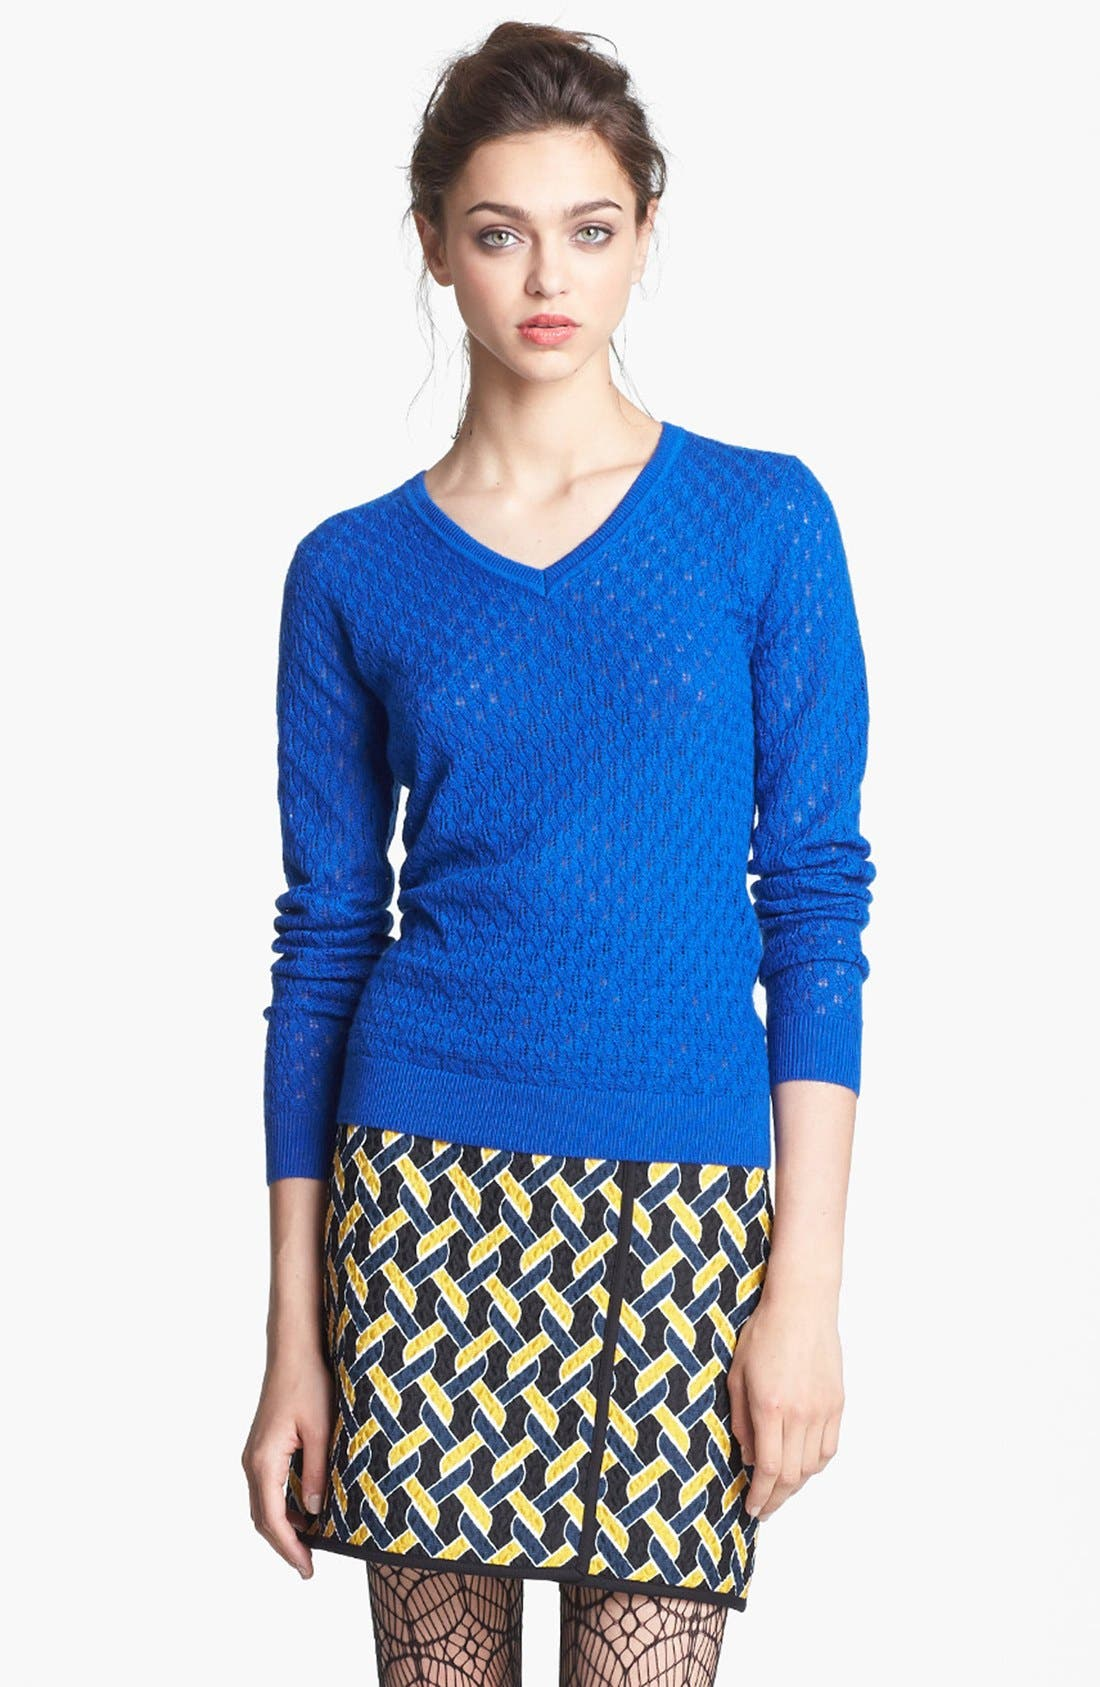 Alternate Image 1 Selected - Miss Wu 'Sofie' V-Neck Cashmere Sweater (Nordstrom Exclusive)